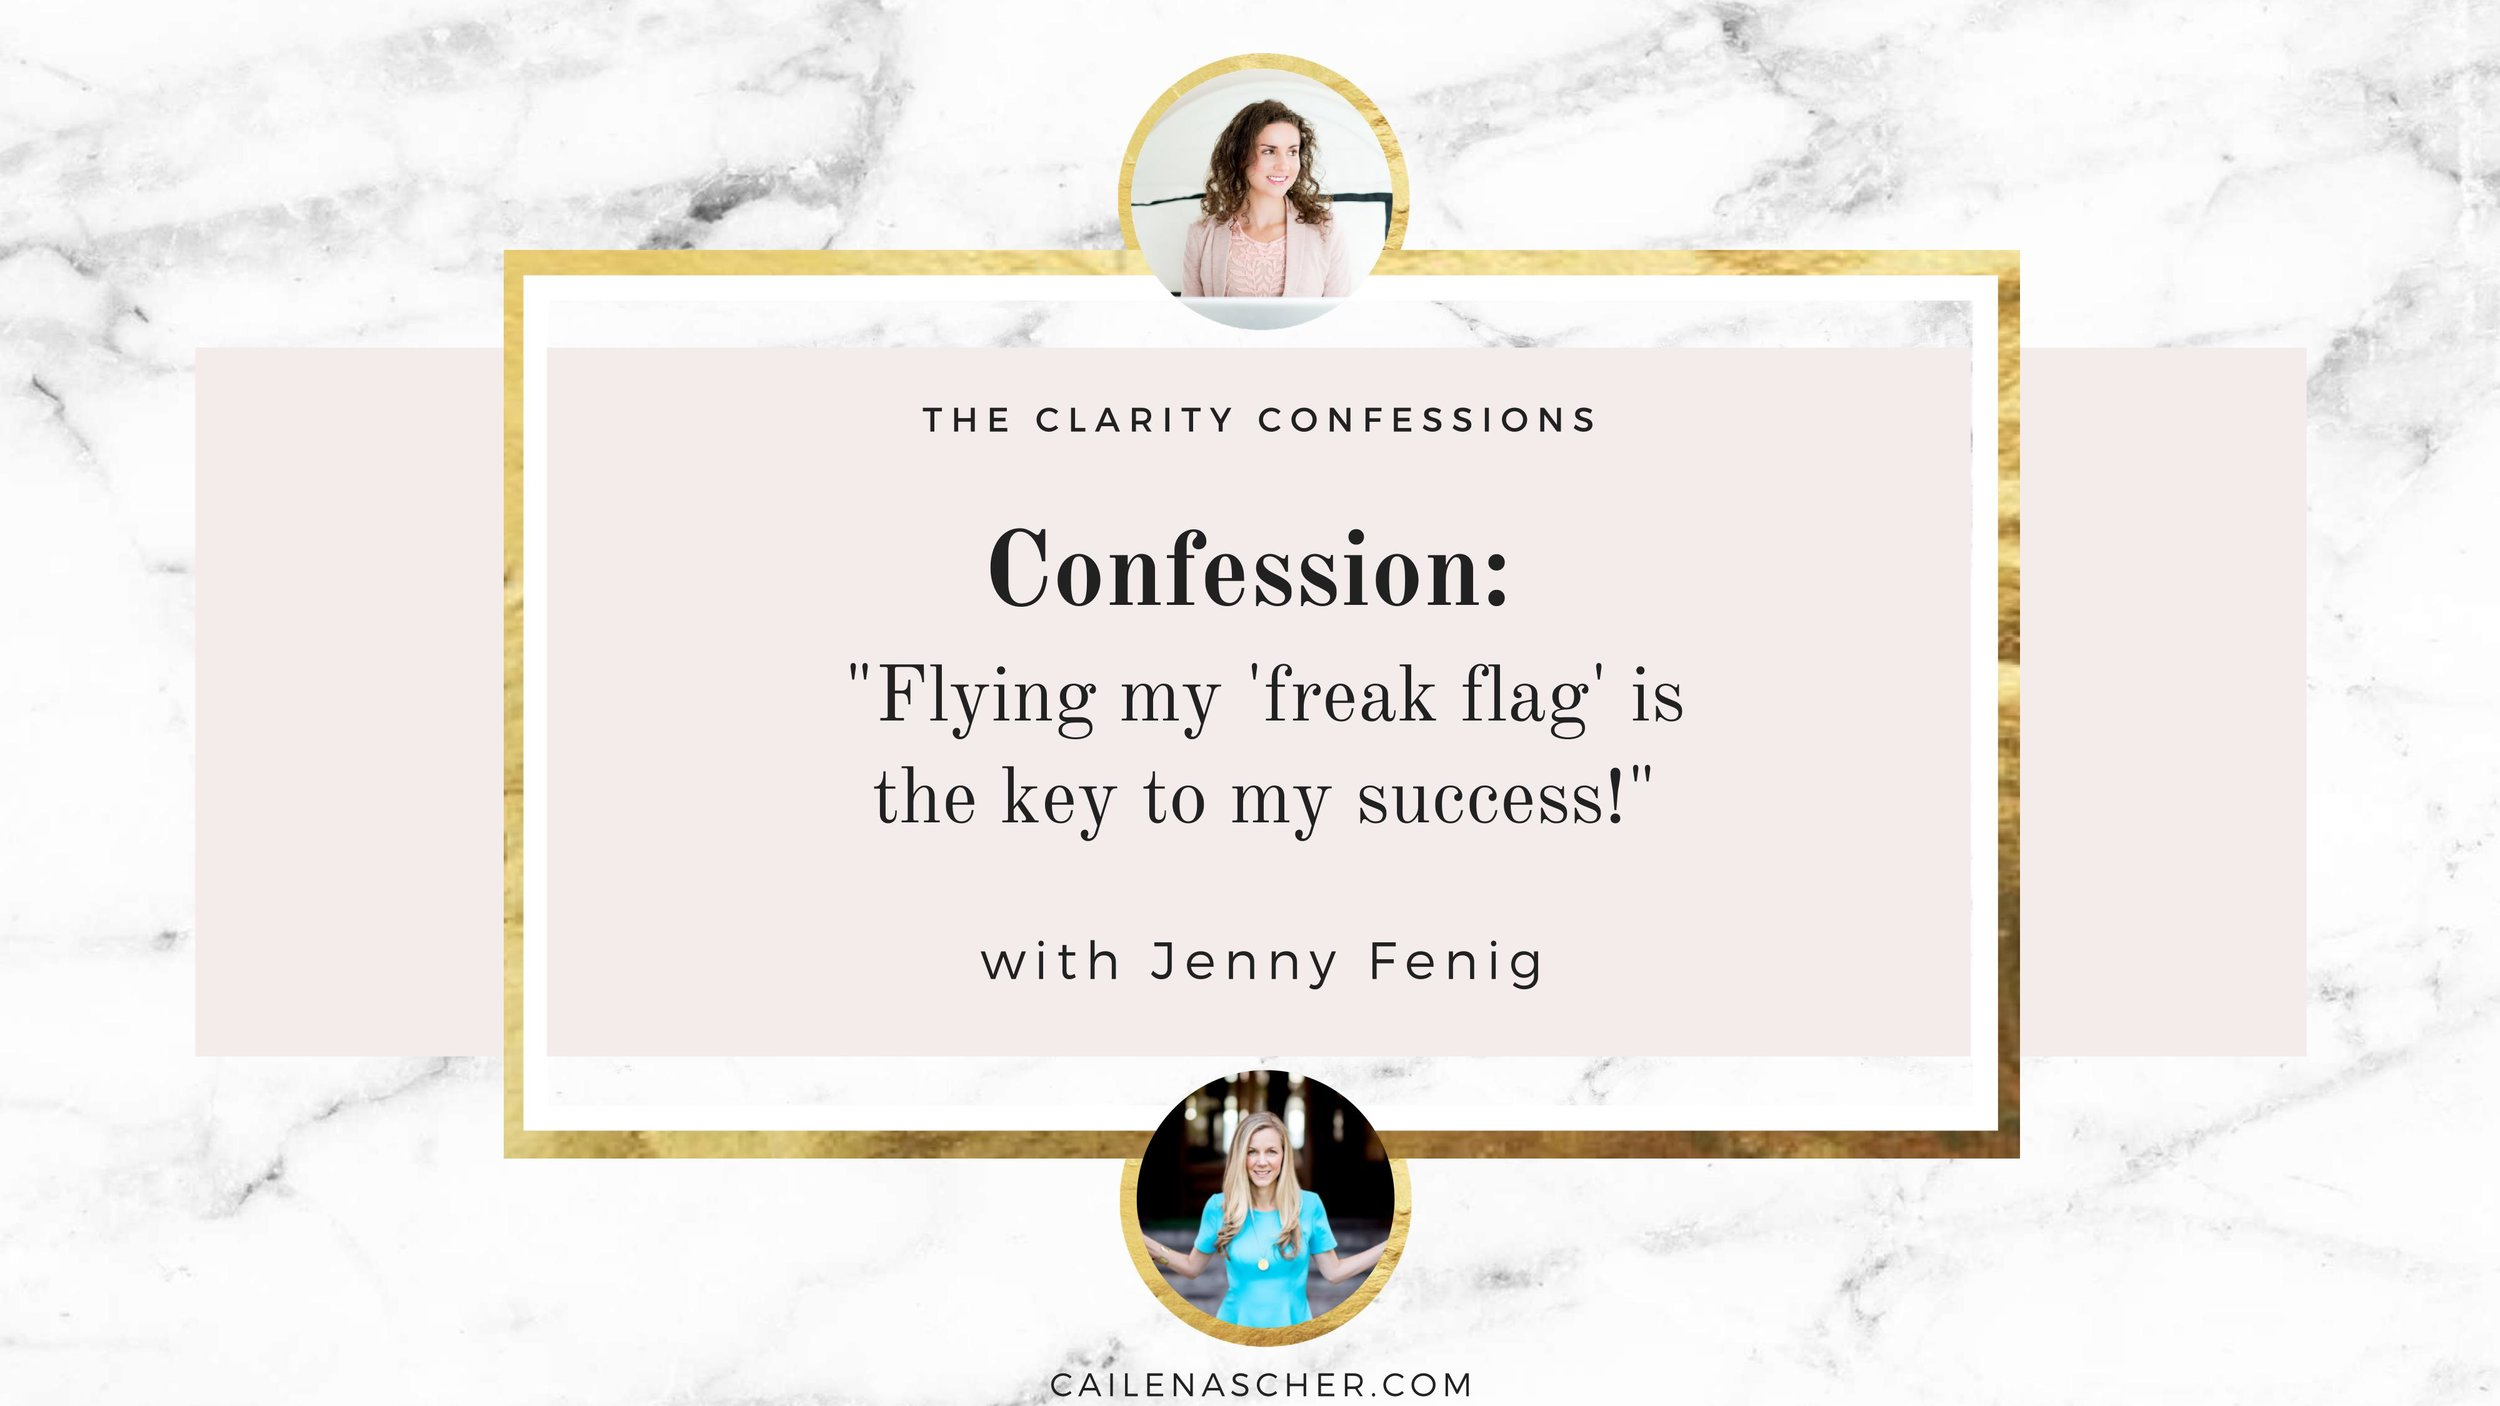 The Clarity Confessions with Cailen Ascher - Jenny Fenig